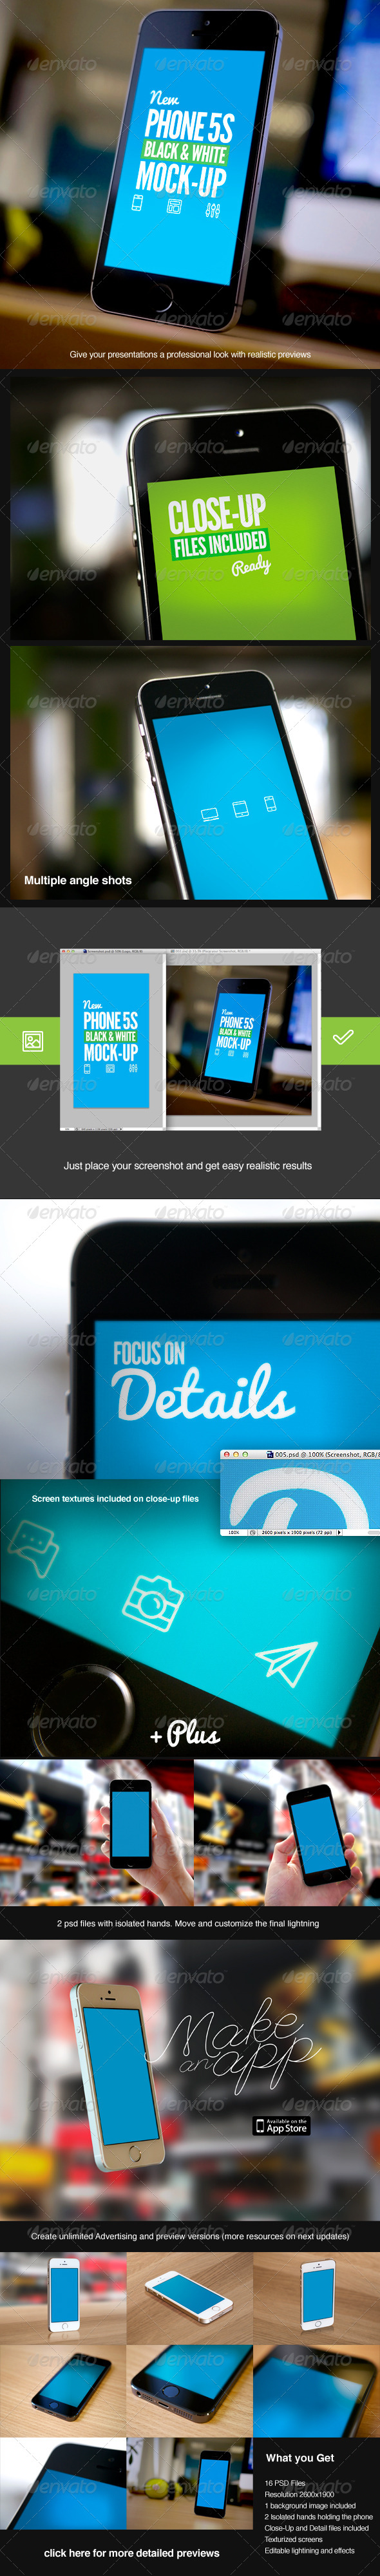 GraphicRiver New Phone Black and White 5S Mock-Up 6705652